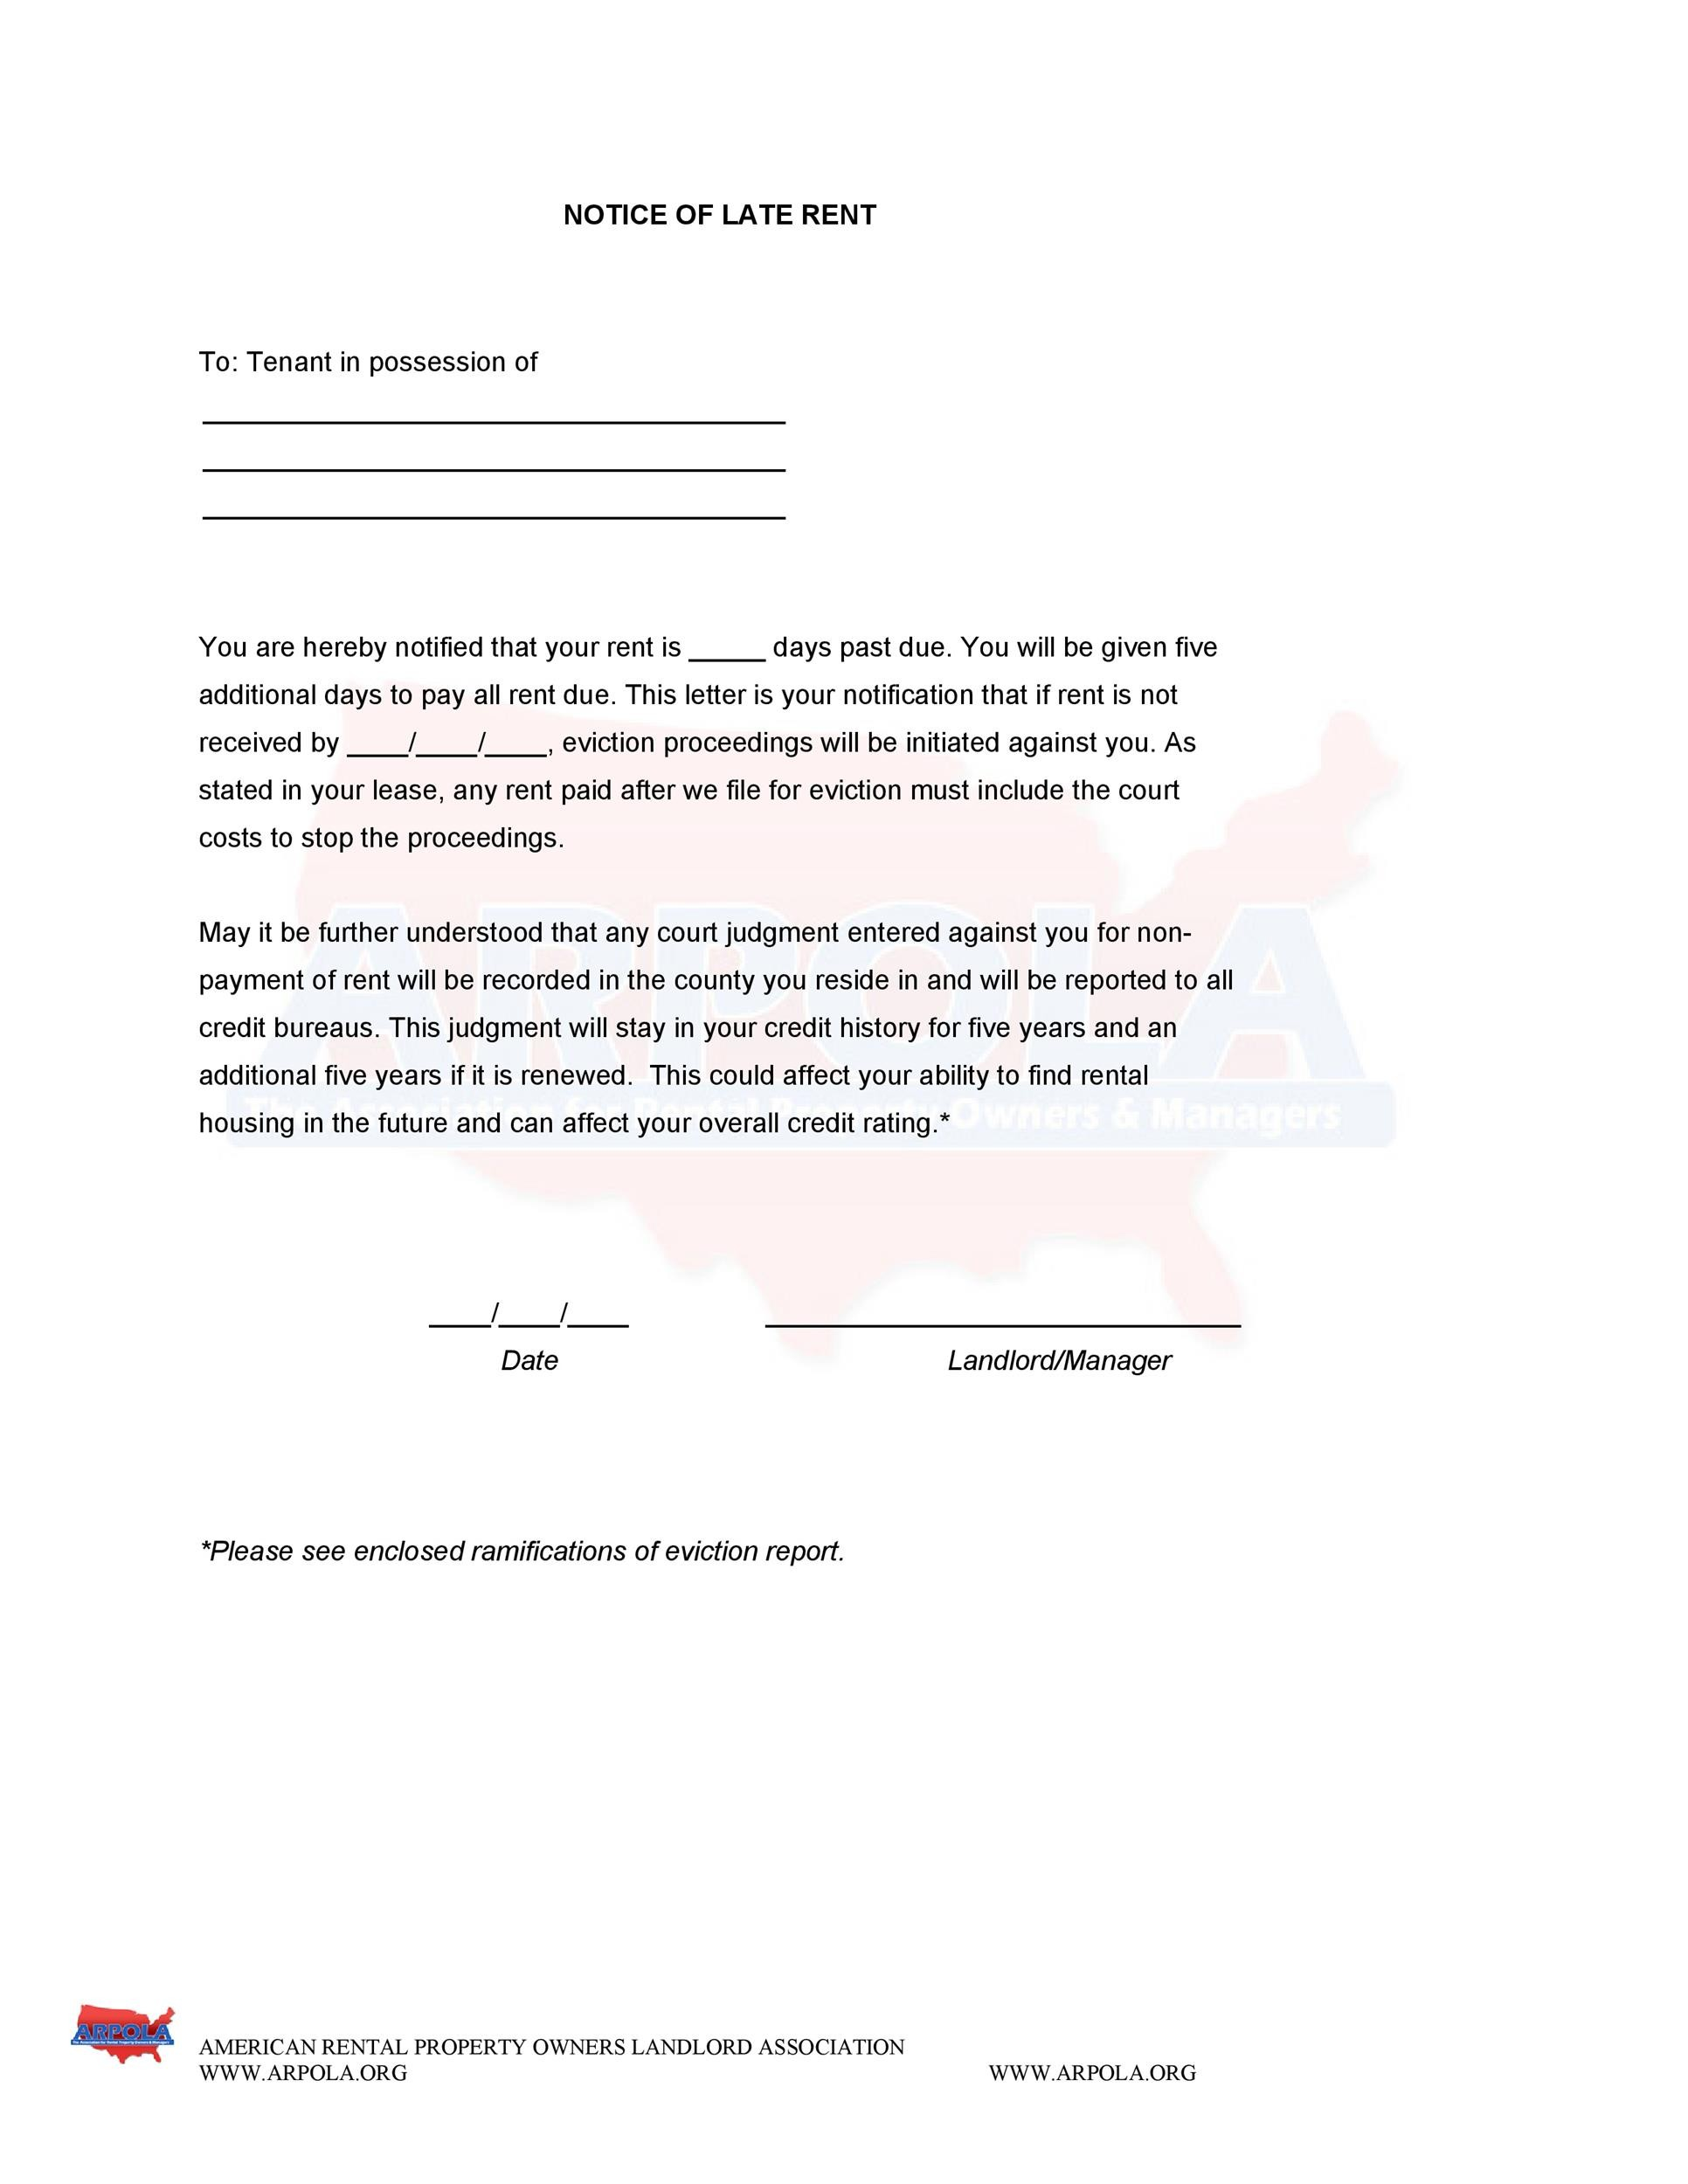 Free Late Rent Notice Template 17